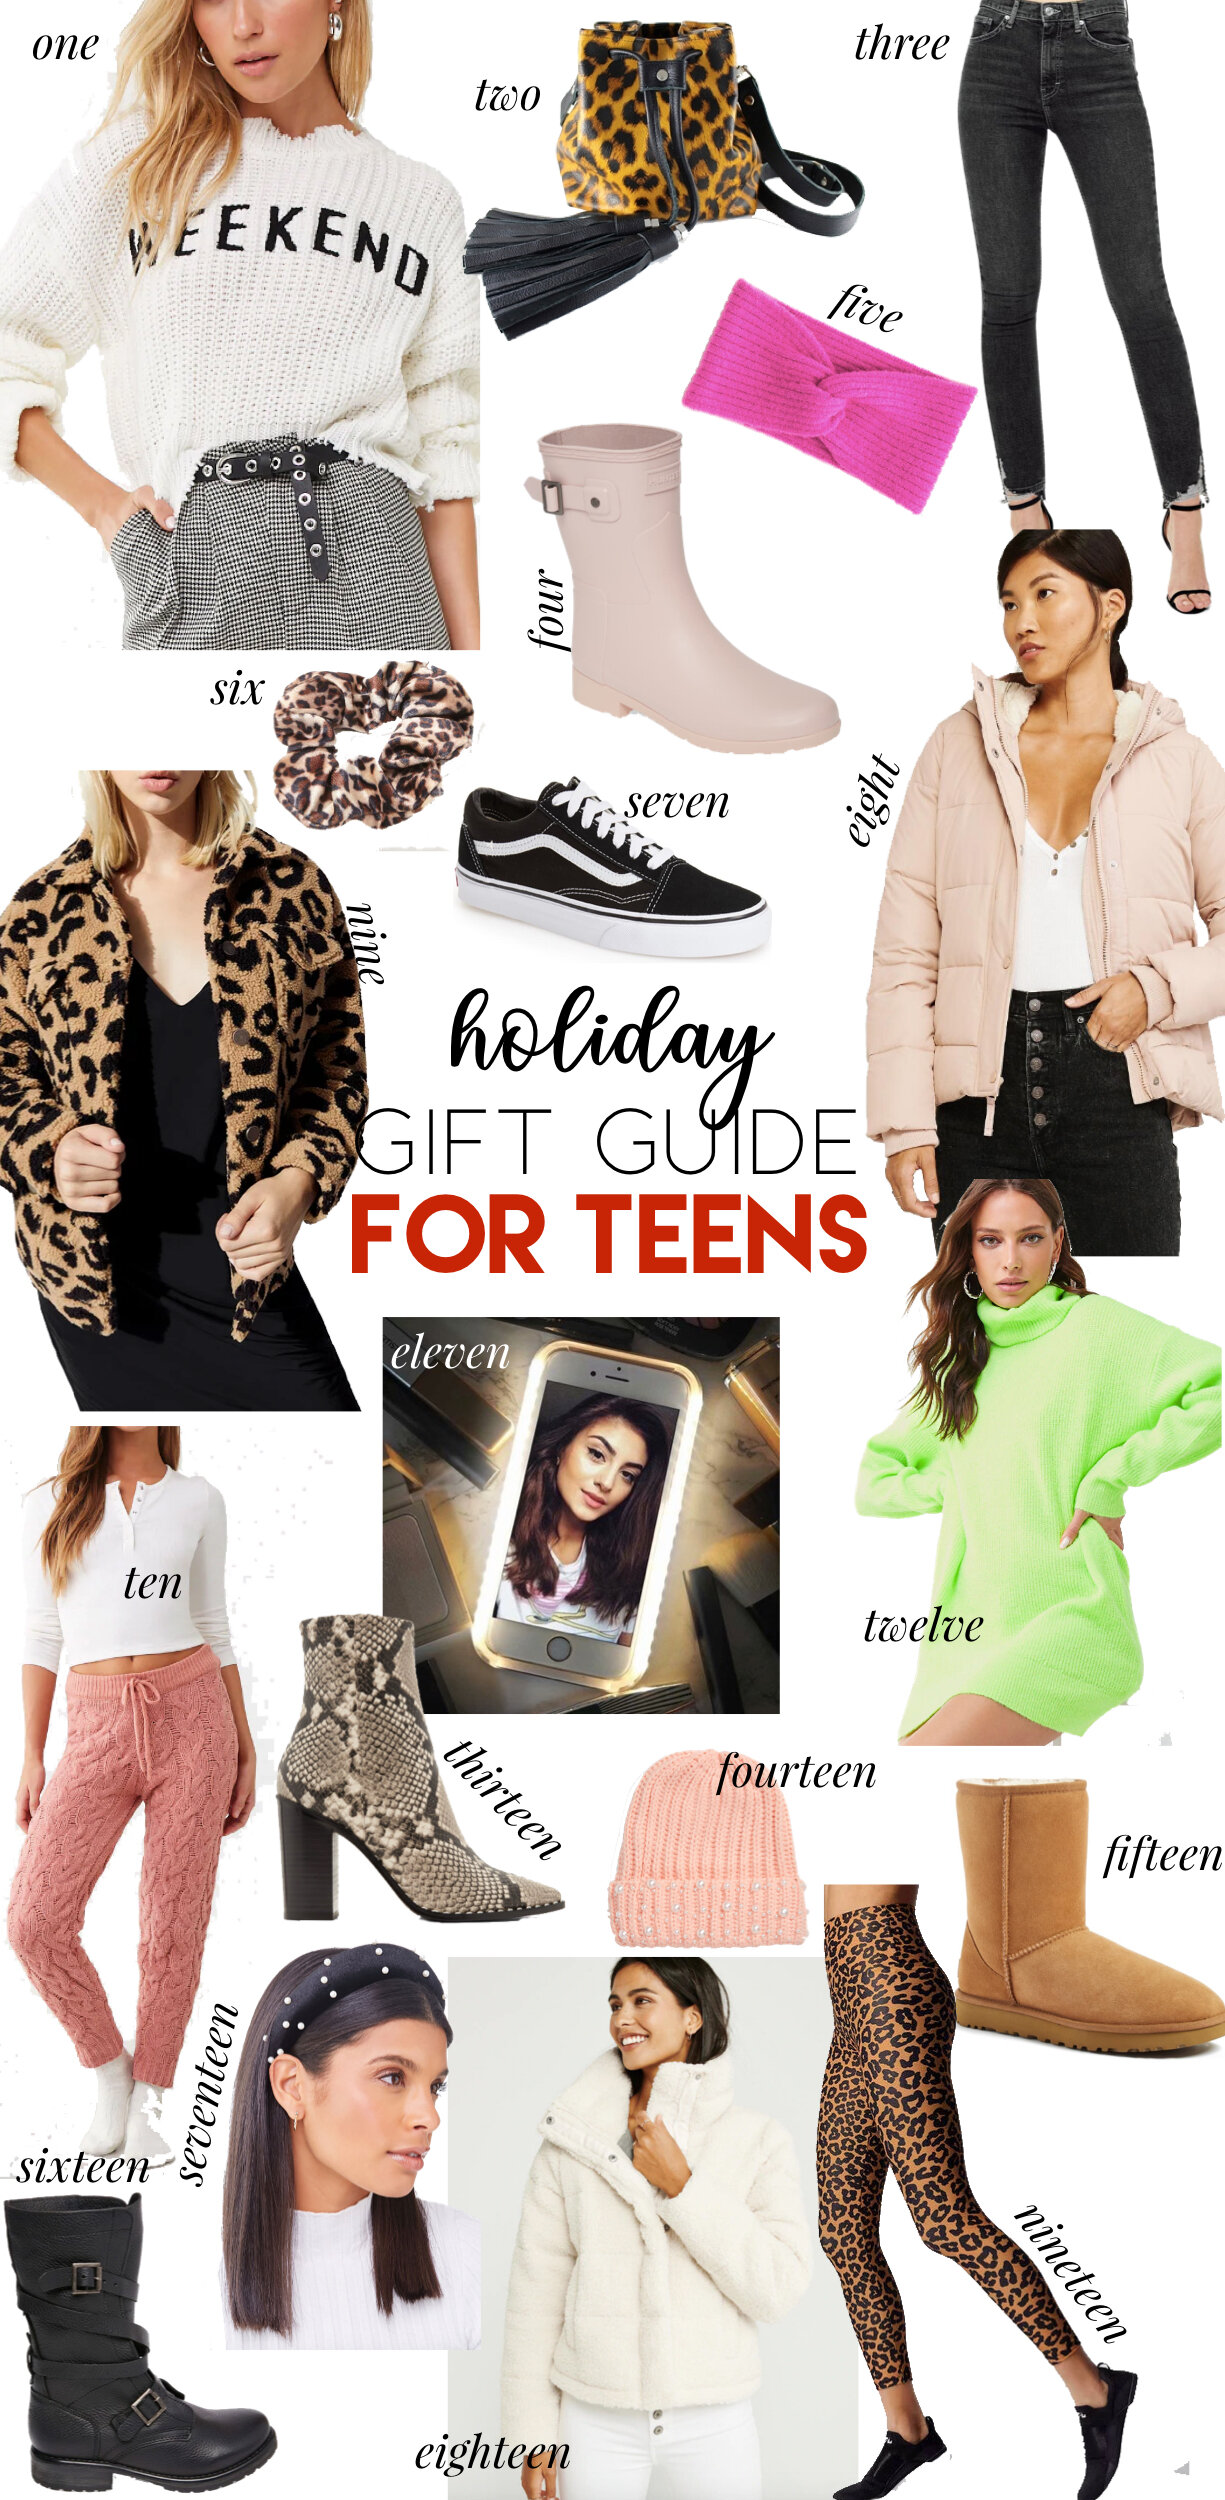 Christmas Shopping For Teenagers The Daileigh